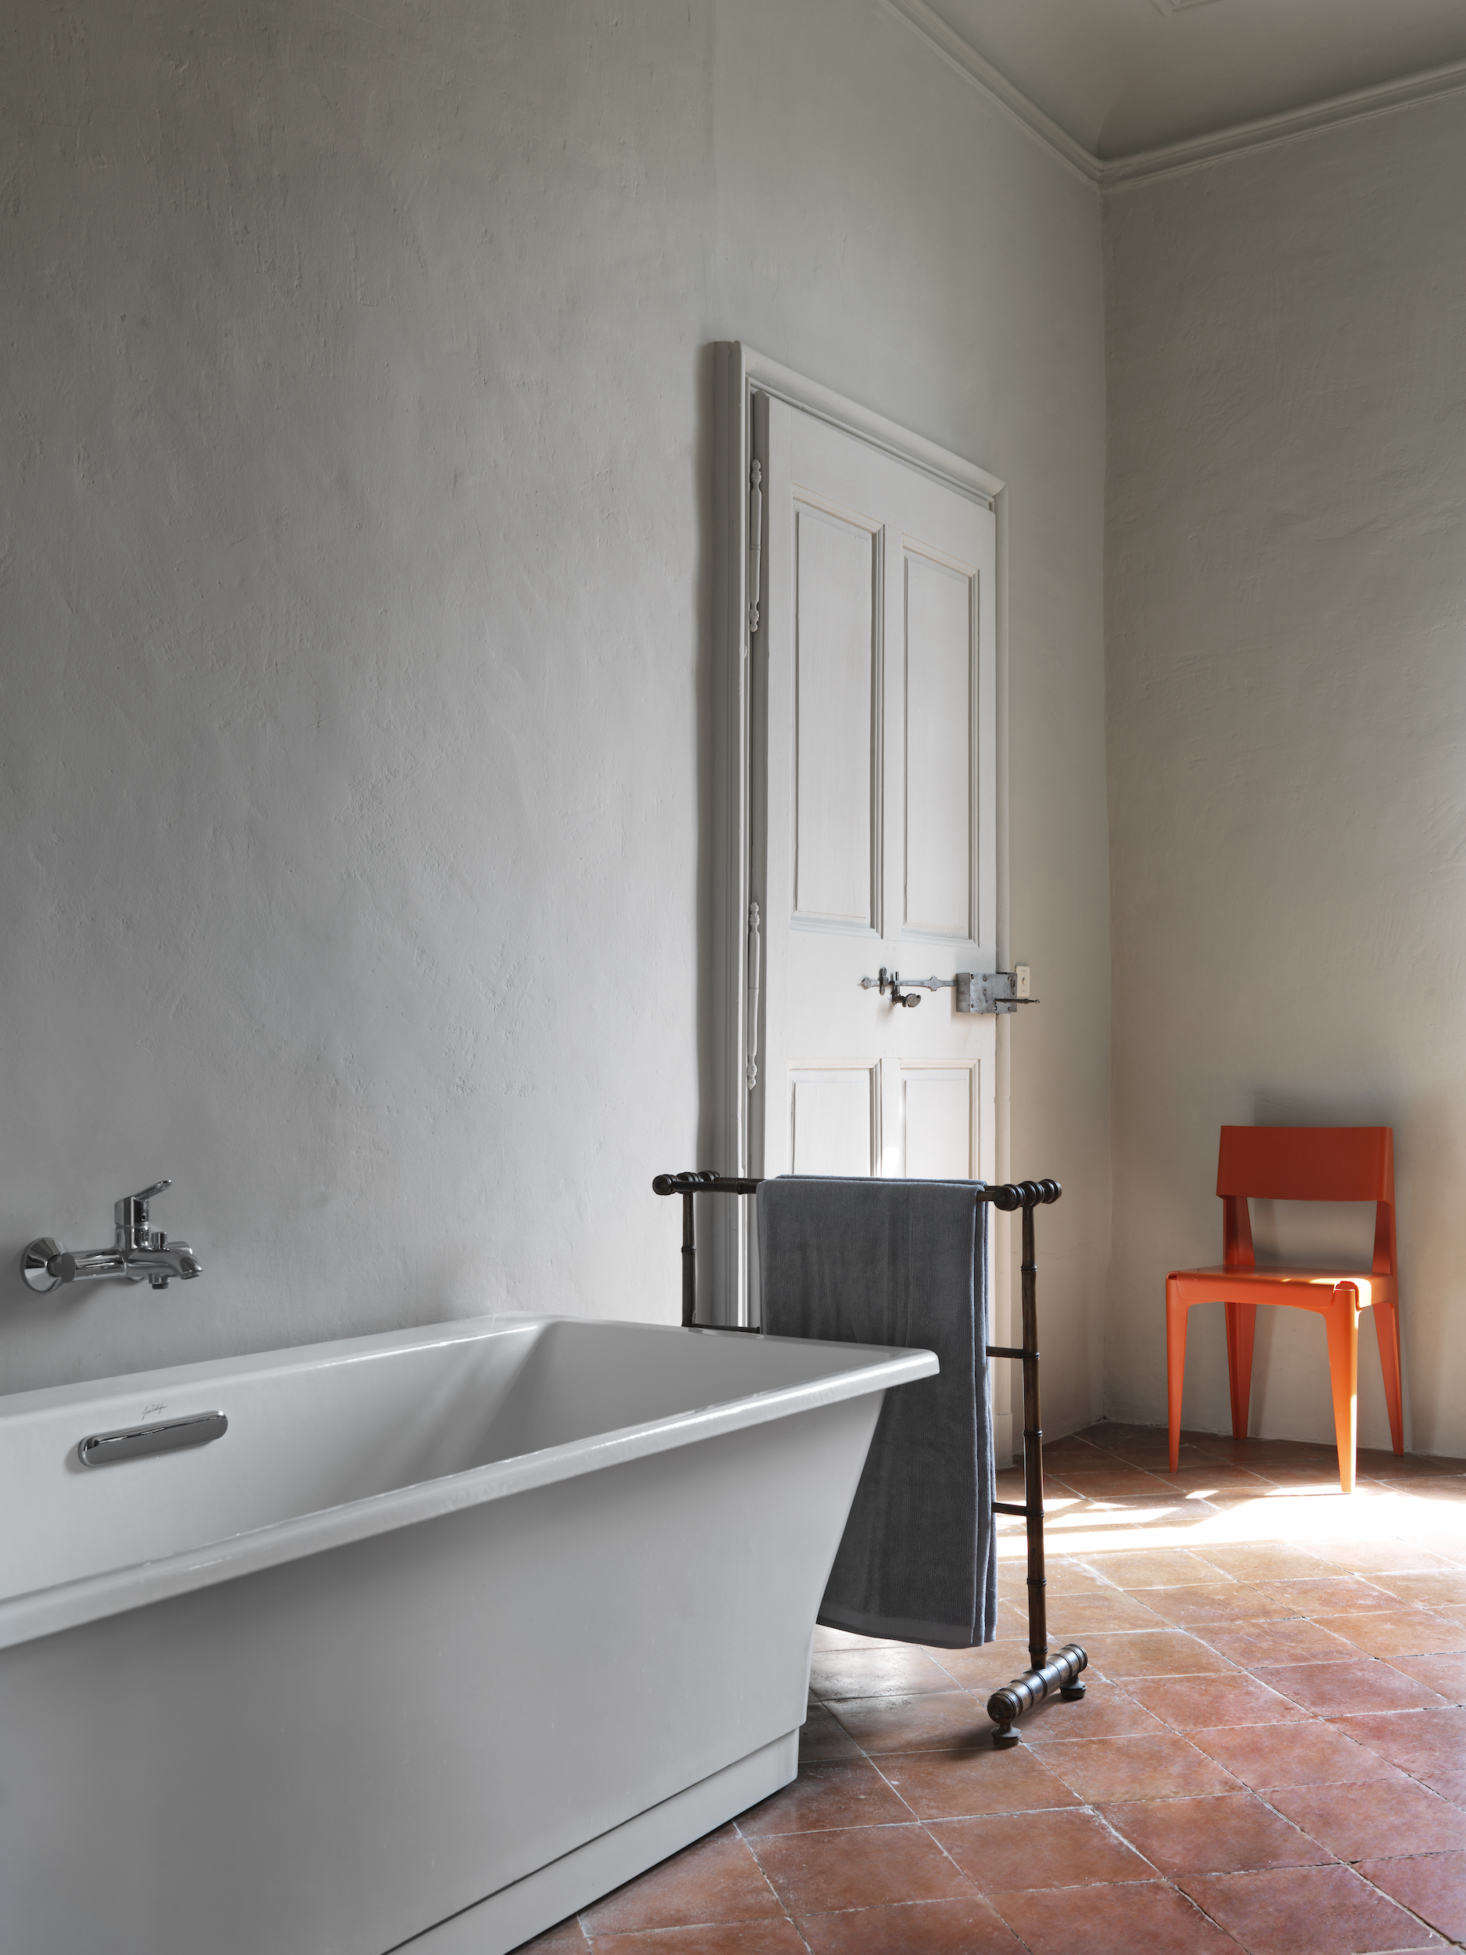 The bathtub is from Jacob Delafon in Paris; the plywood chair is by Barber & Osgerby for Isokon Plus.